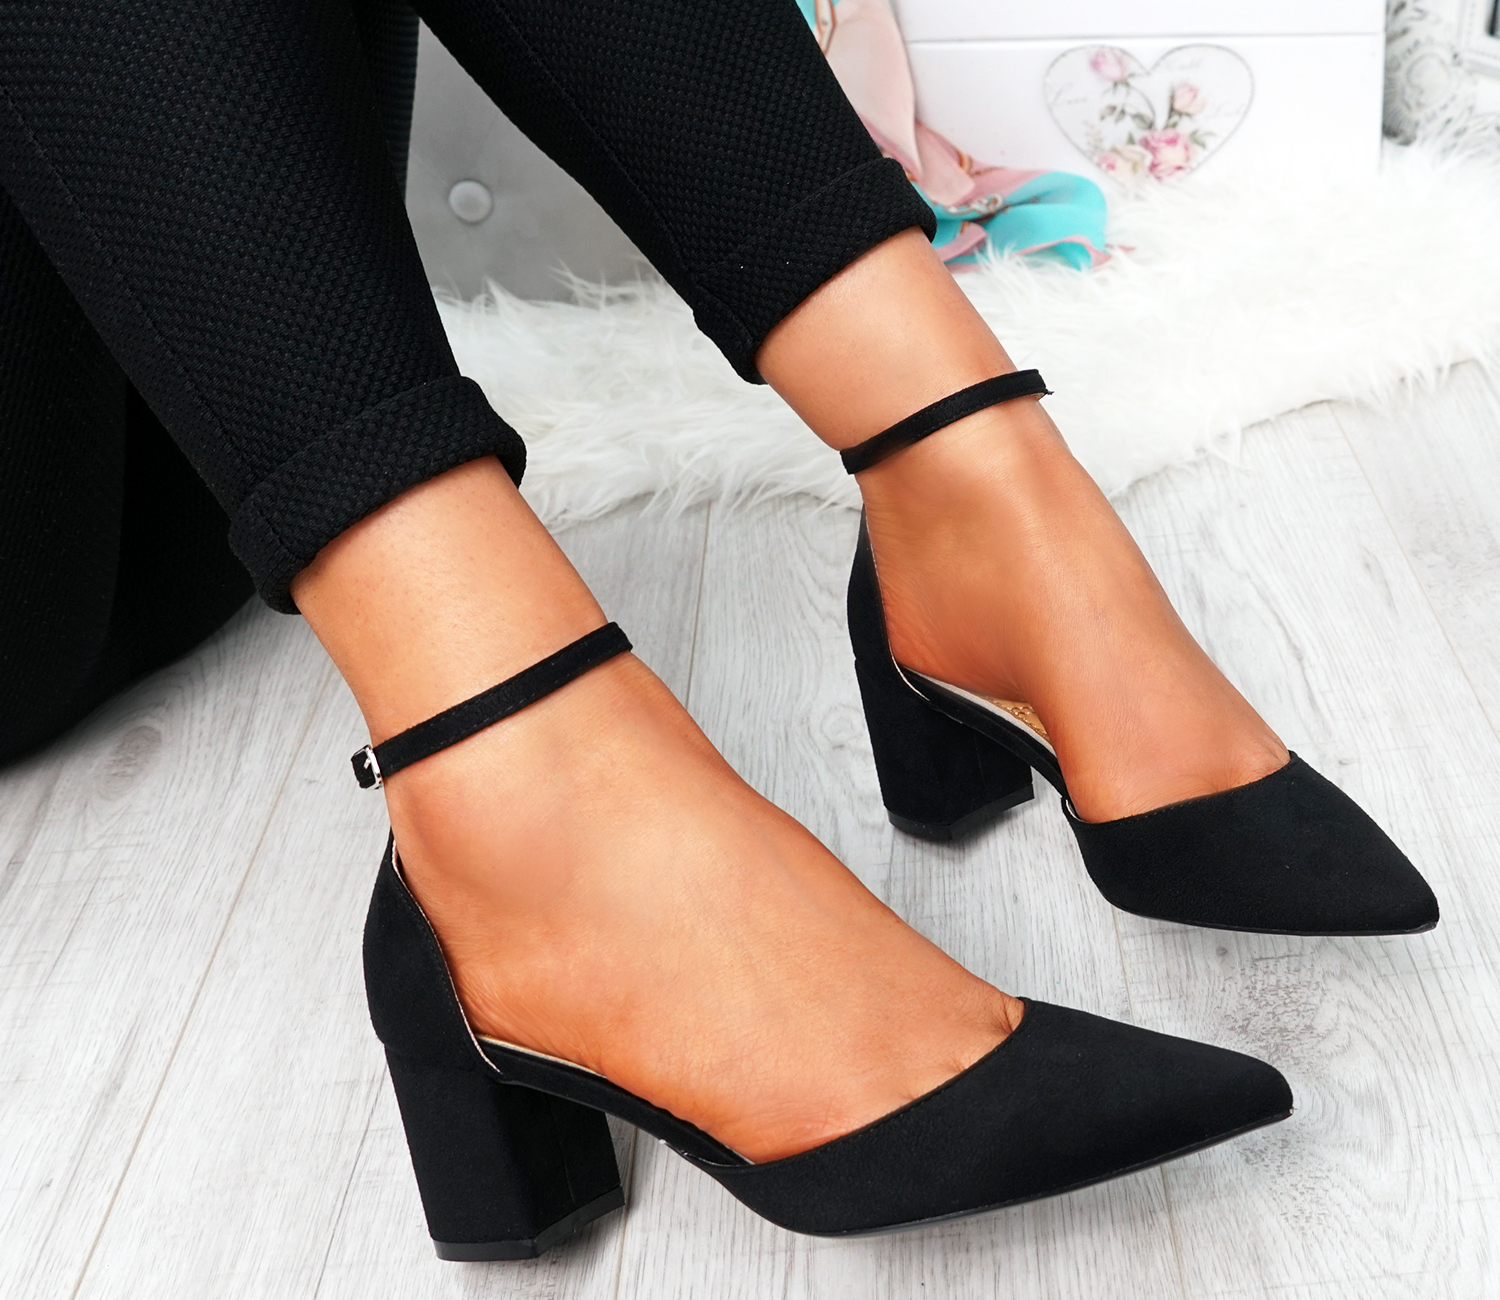 WOMENS-LADIES-ANKLE-STRAP-BLOCK-HEEL-PUMPS-POINTED-TOE-WORK-PARTY-SHOES-SIZE thumbnail 10